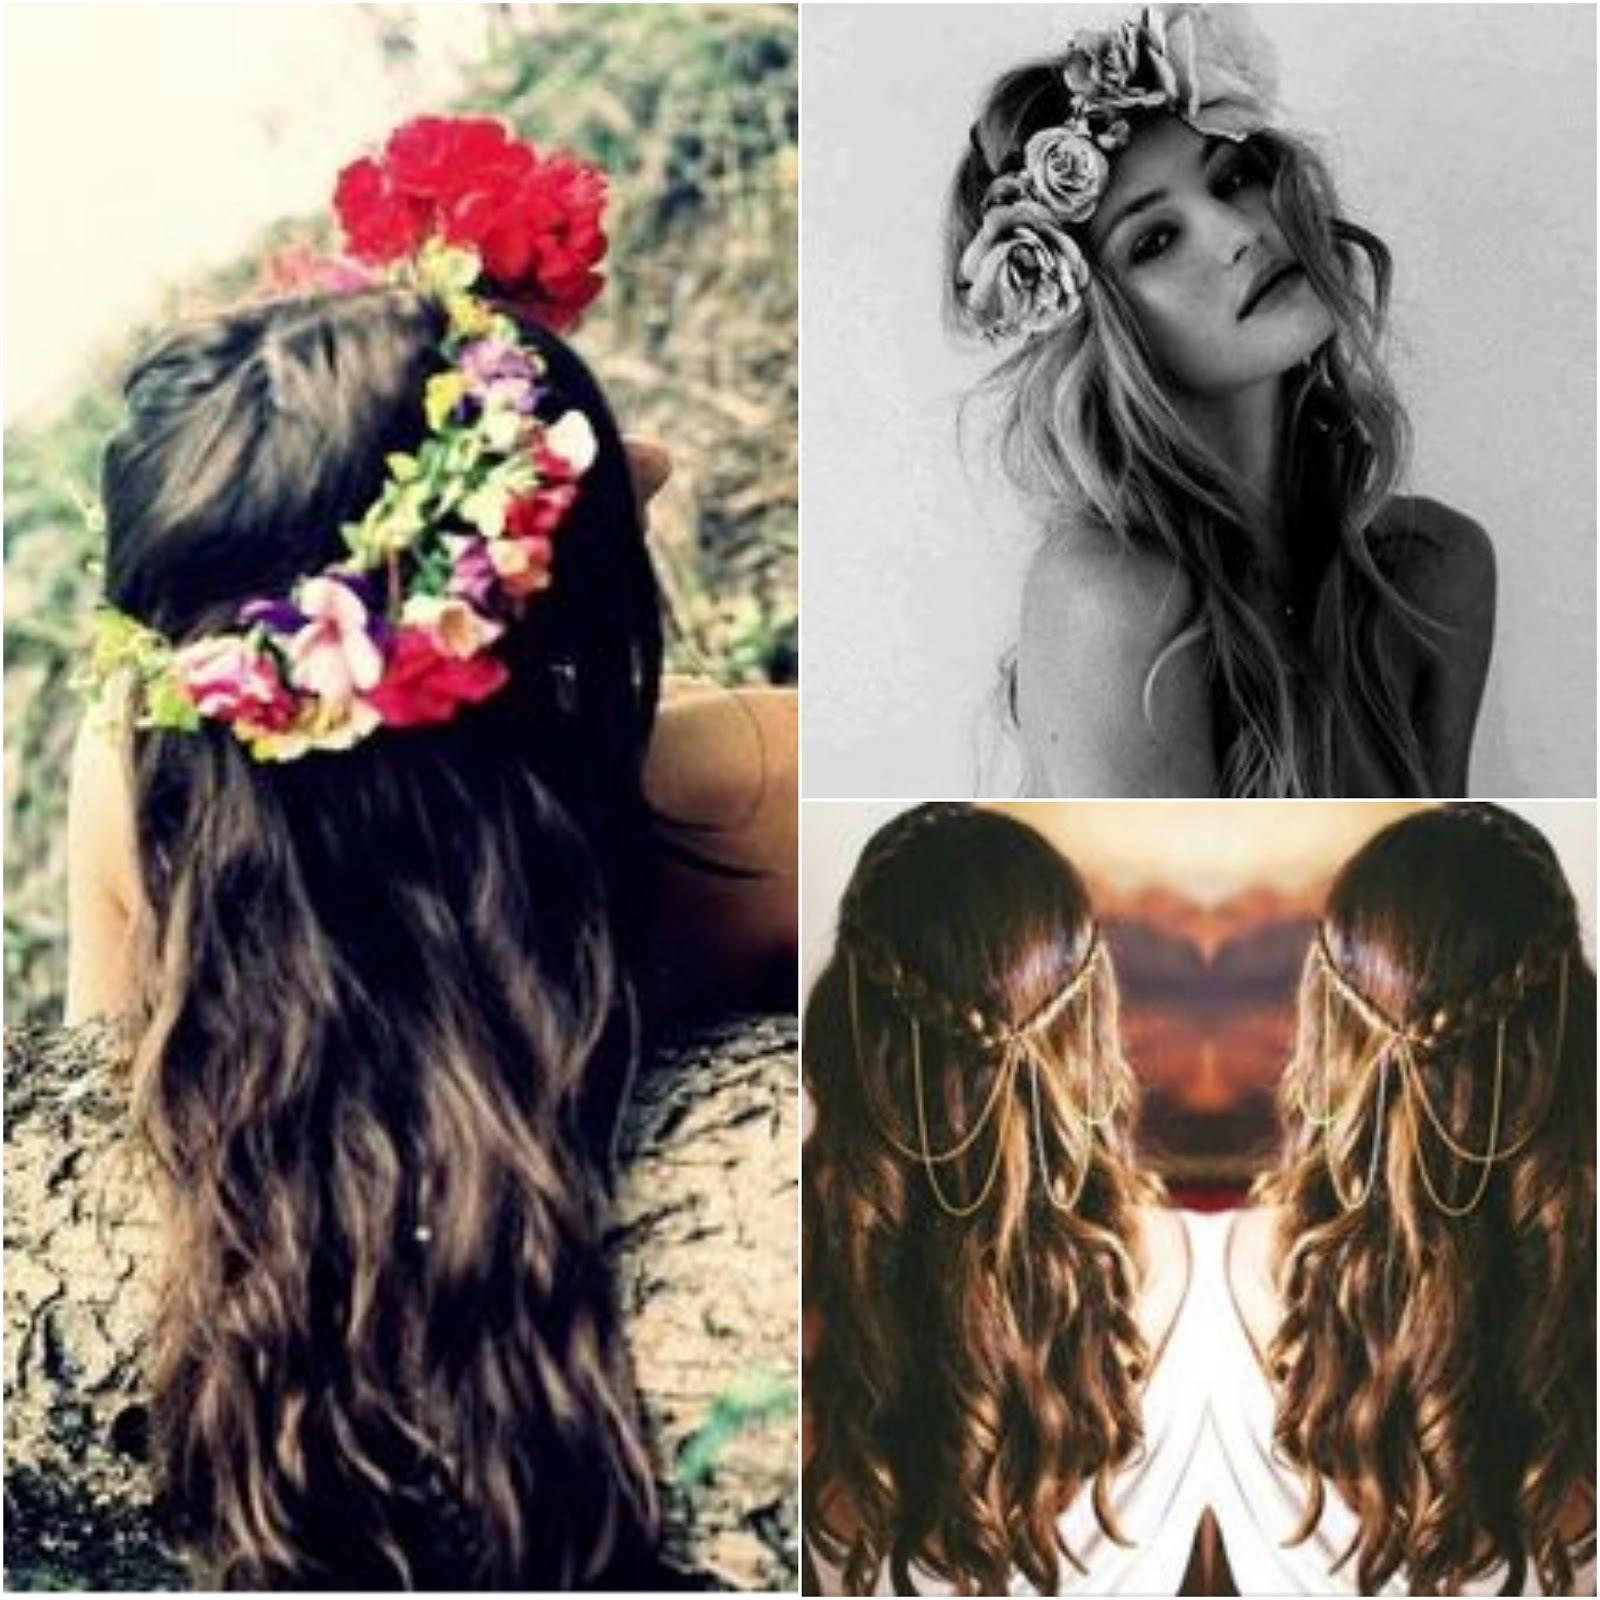 festival-hair-style-ideas-glastonbury